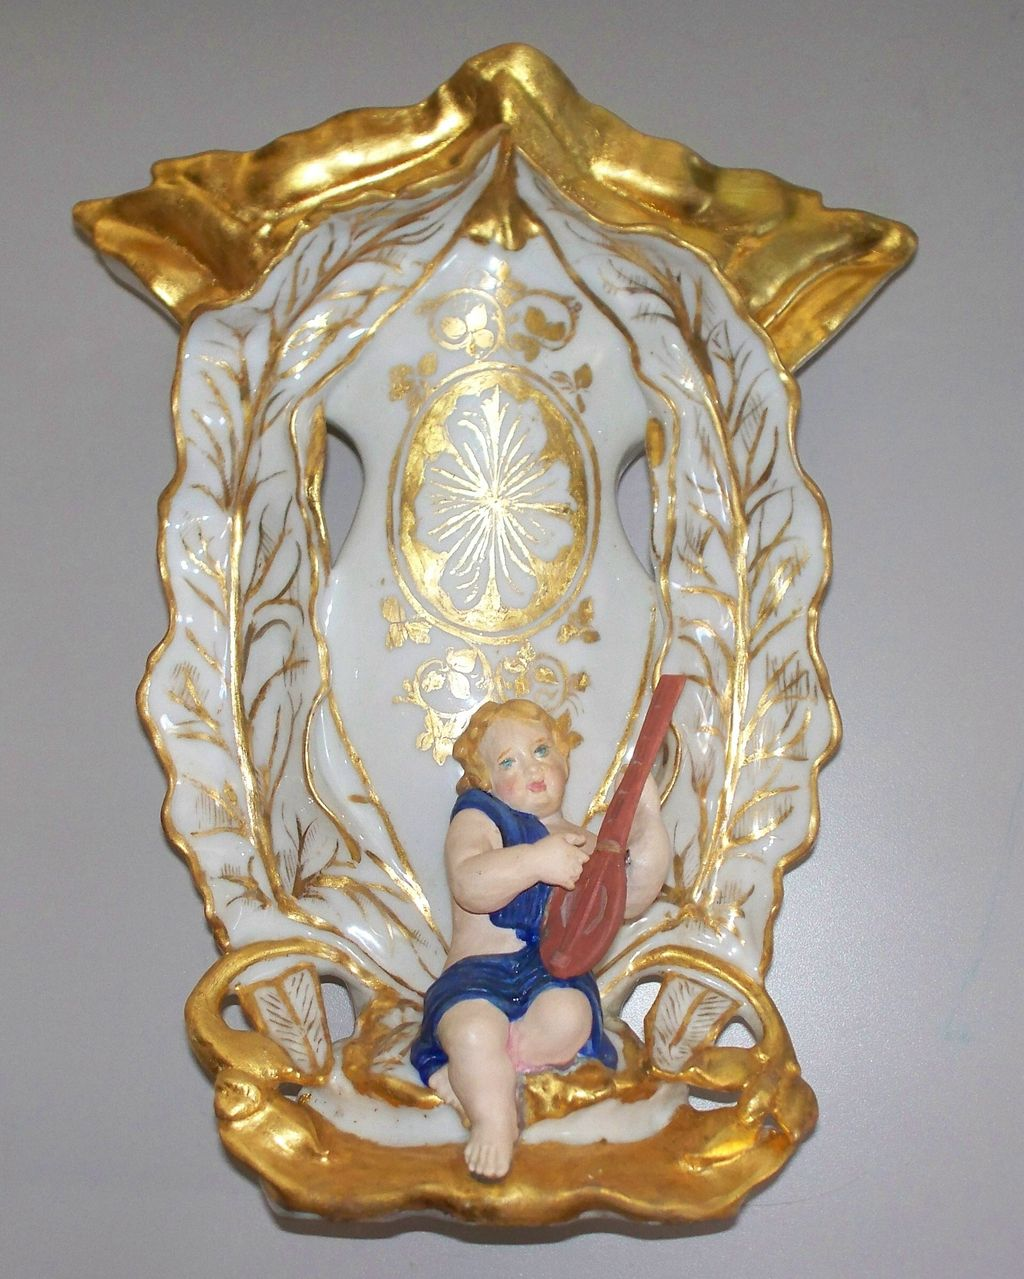 Dazzling Antique Old Paris Vase of Boy Playing a Guitar/Mandolin circa 1850